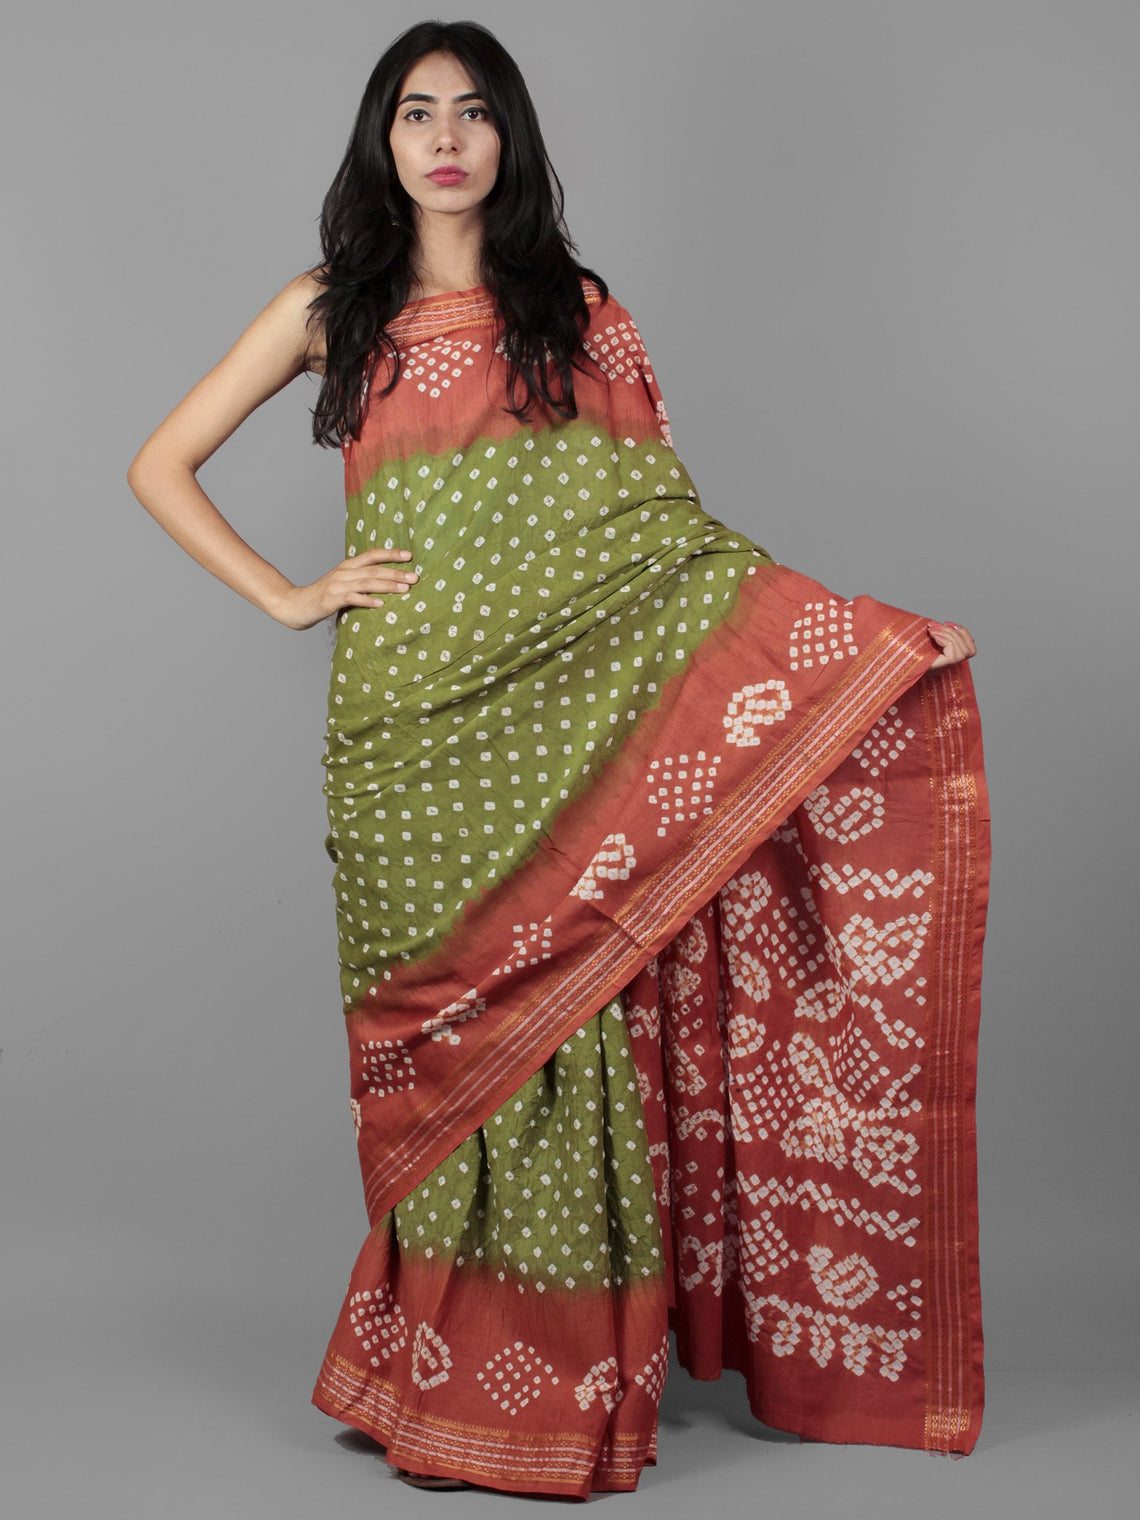 Green Peach Ivory Hand Tie & Dye Bandhej Glace Cotton Saree With Resham Border - S031701994